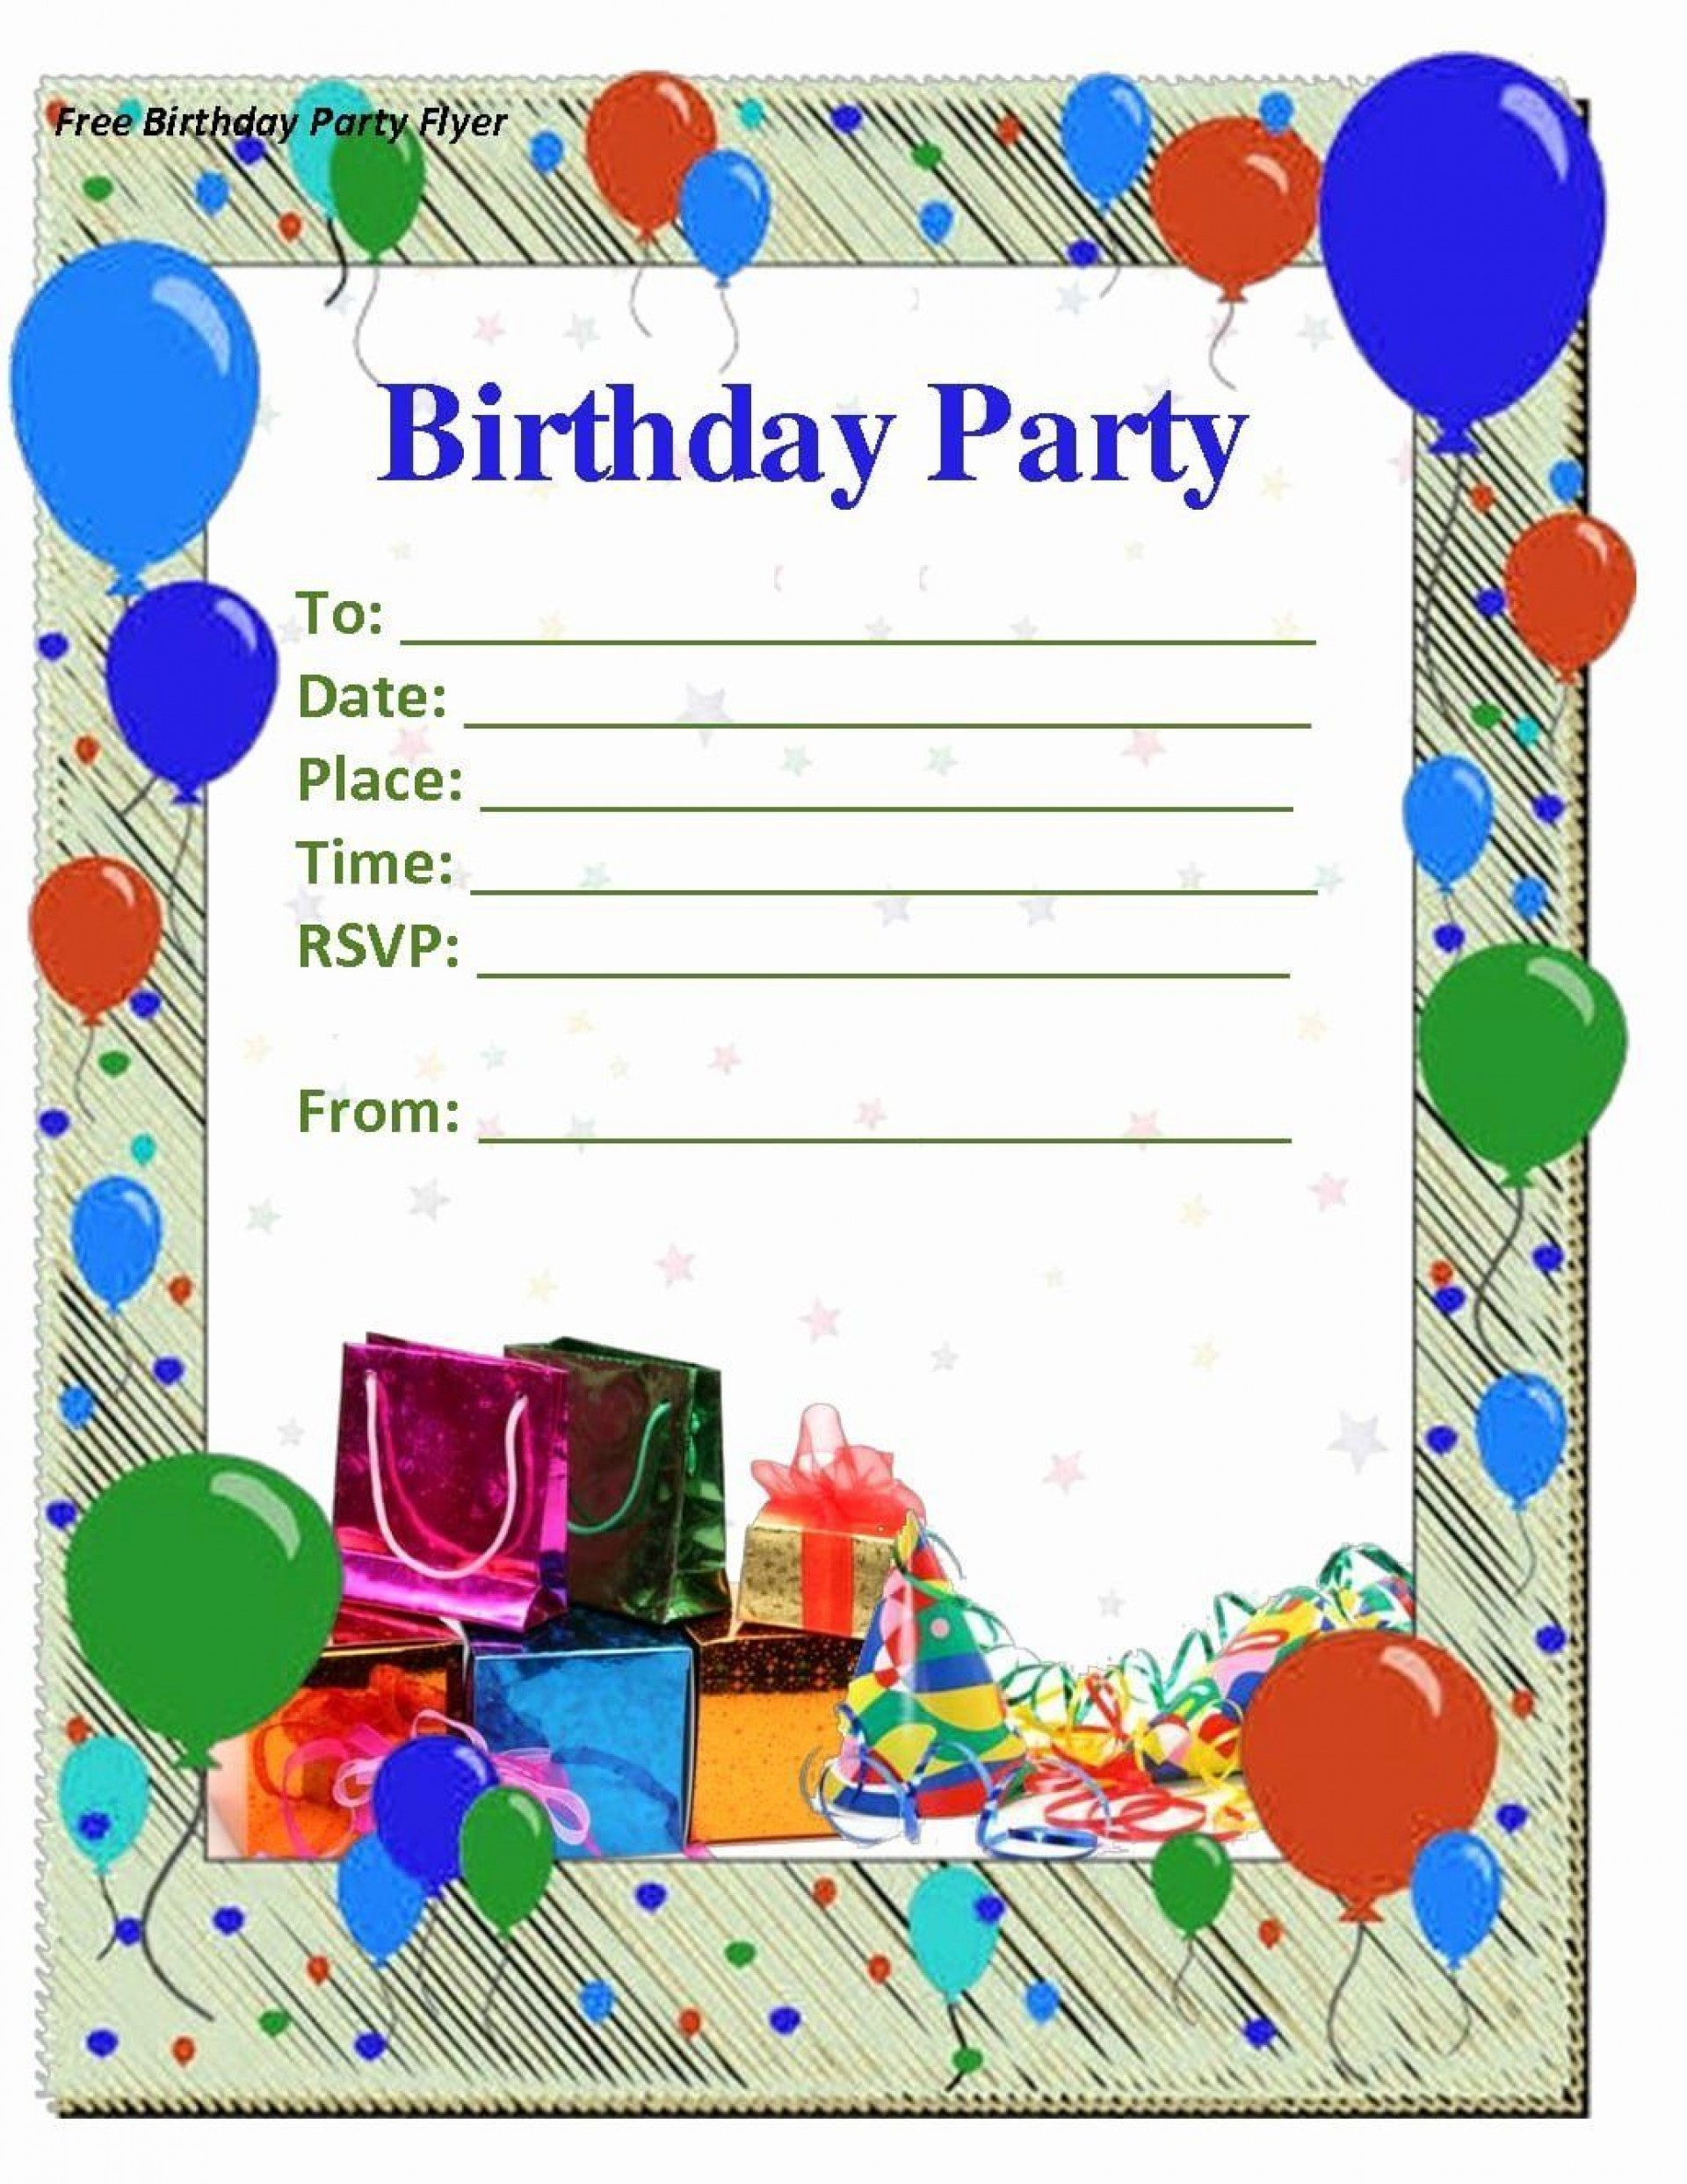 000 Unique Birthday Party Invitation Template Word High Resolution  40th Wording Sample Unicorn Free1920